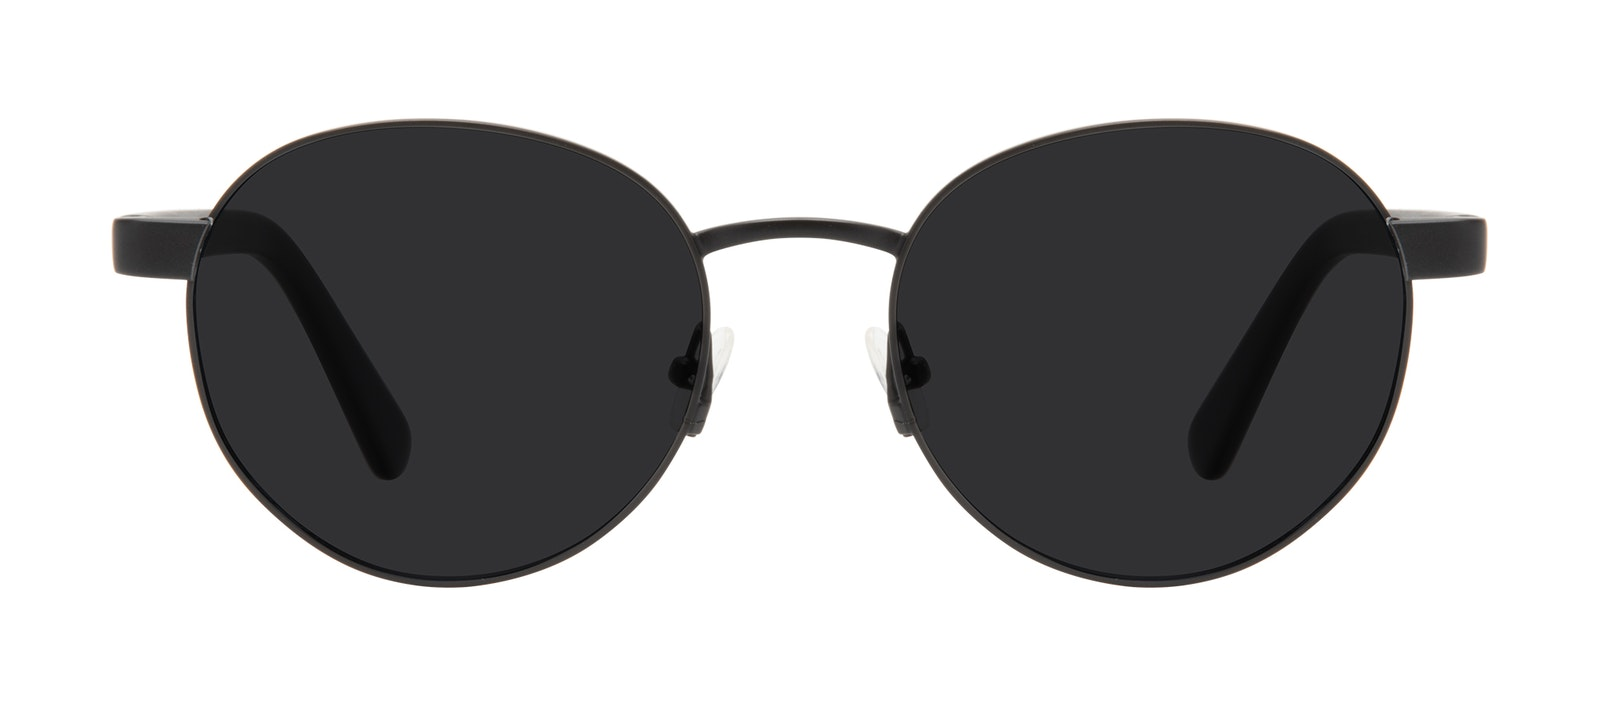 Affordable Fashion Glasses Round Sunglasses Men Alter Black Front